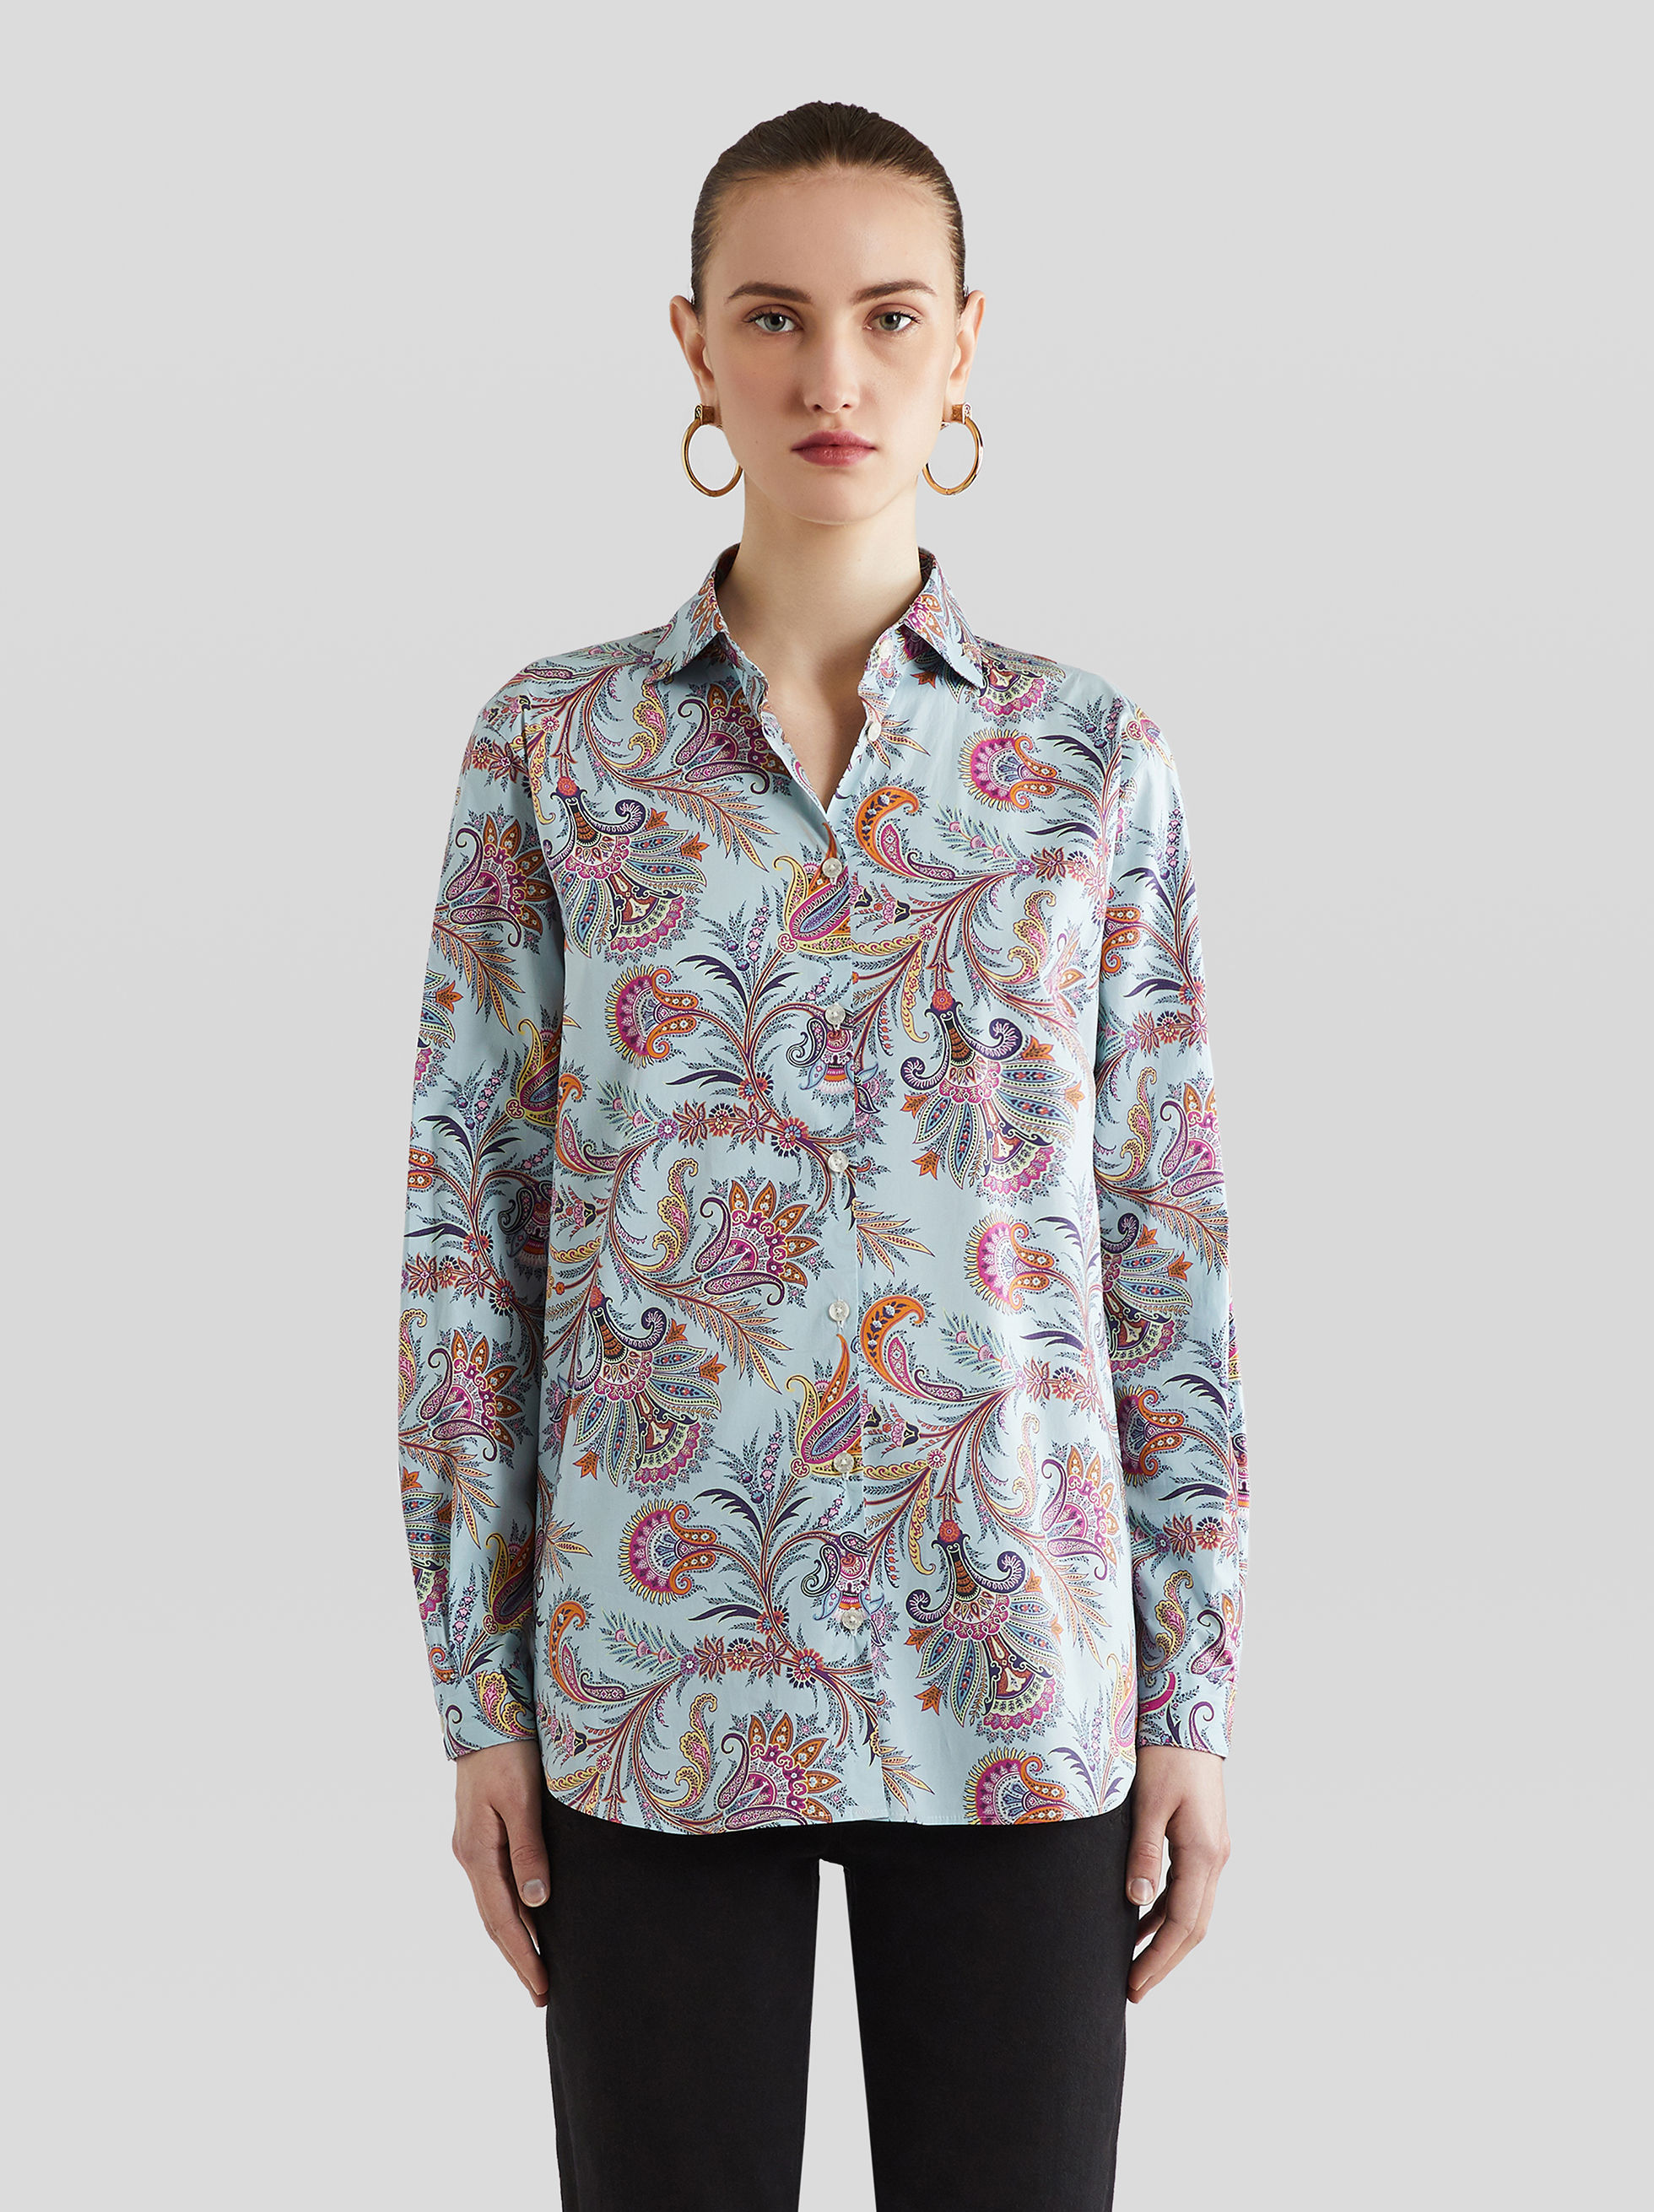 SHIRT WITH LEAFY PAISLEY PRINT